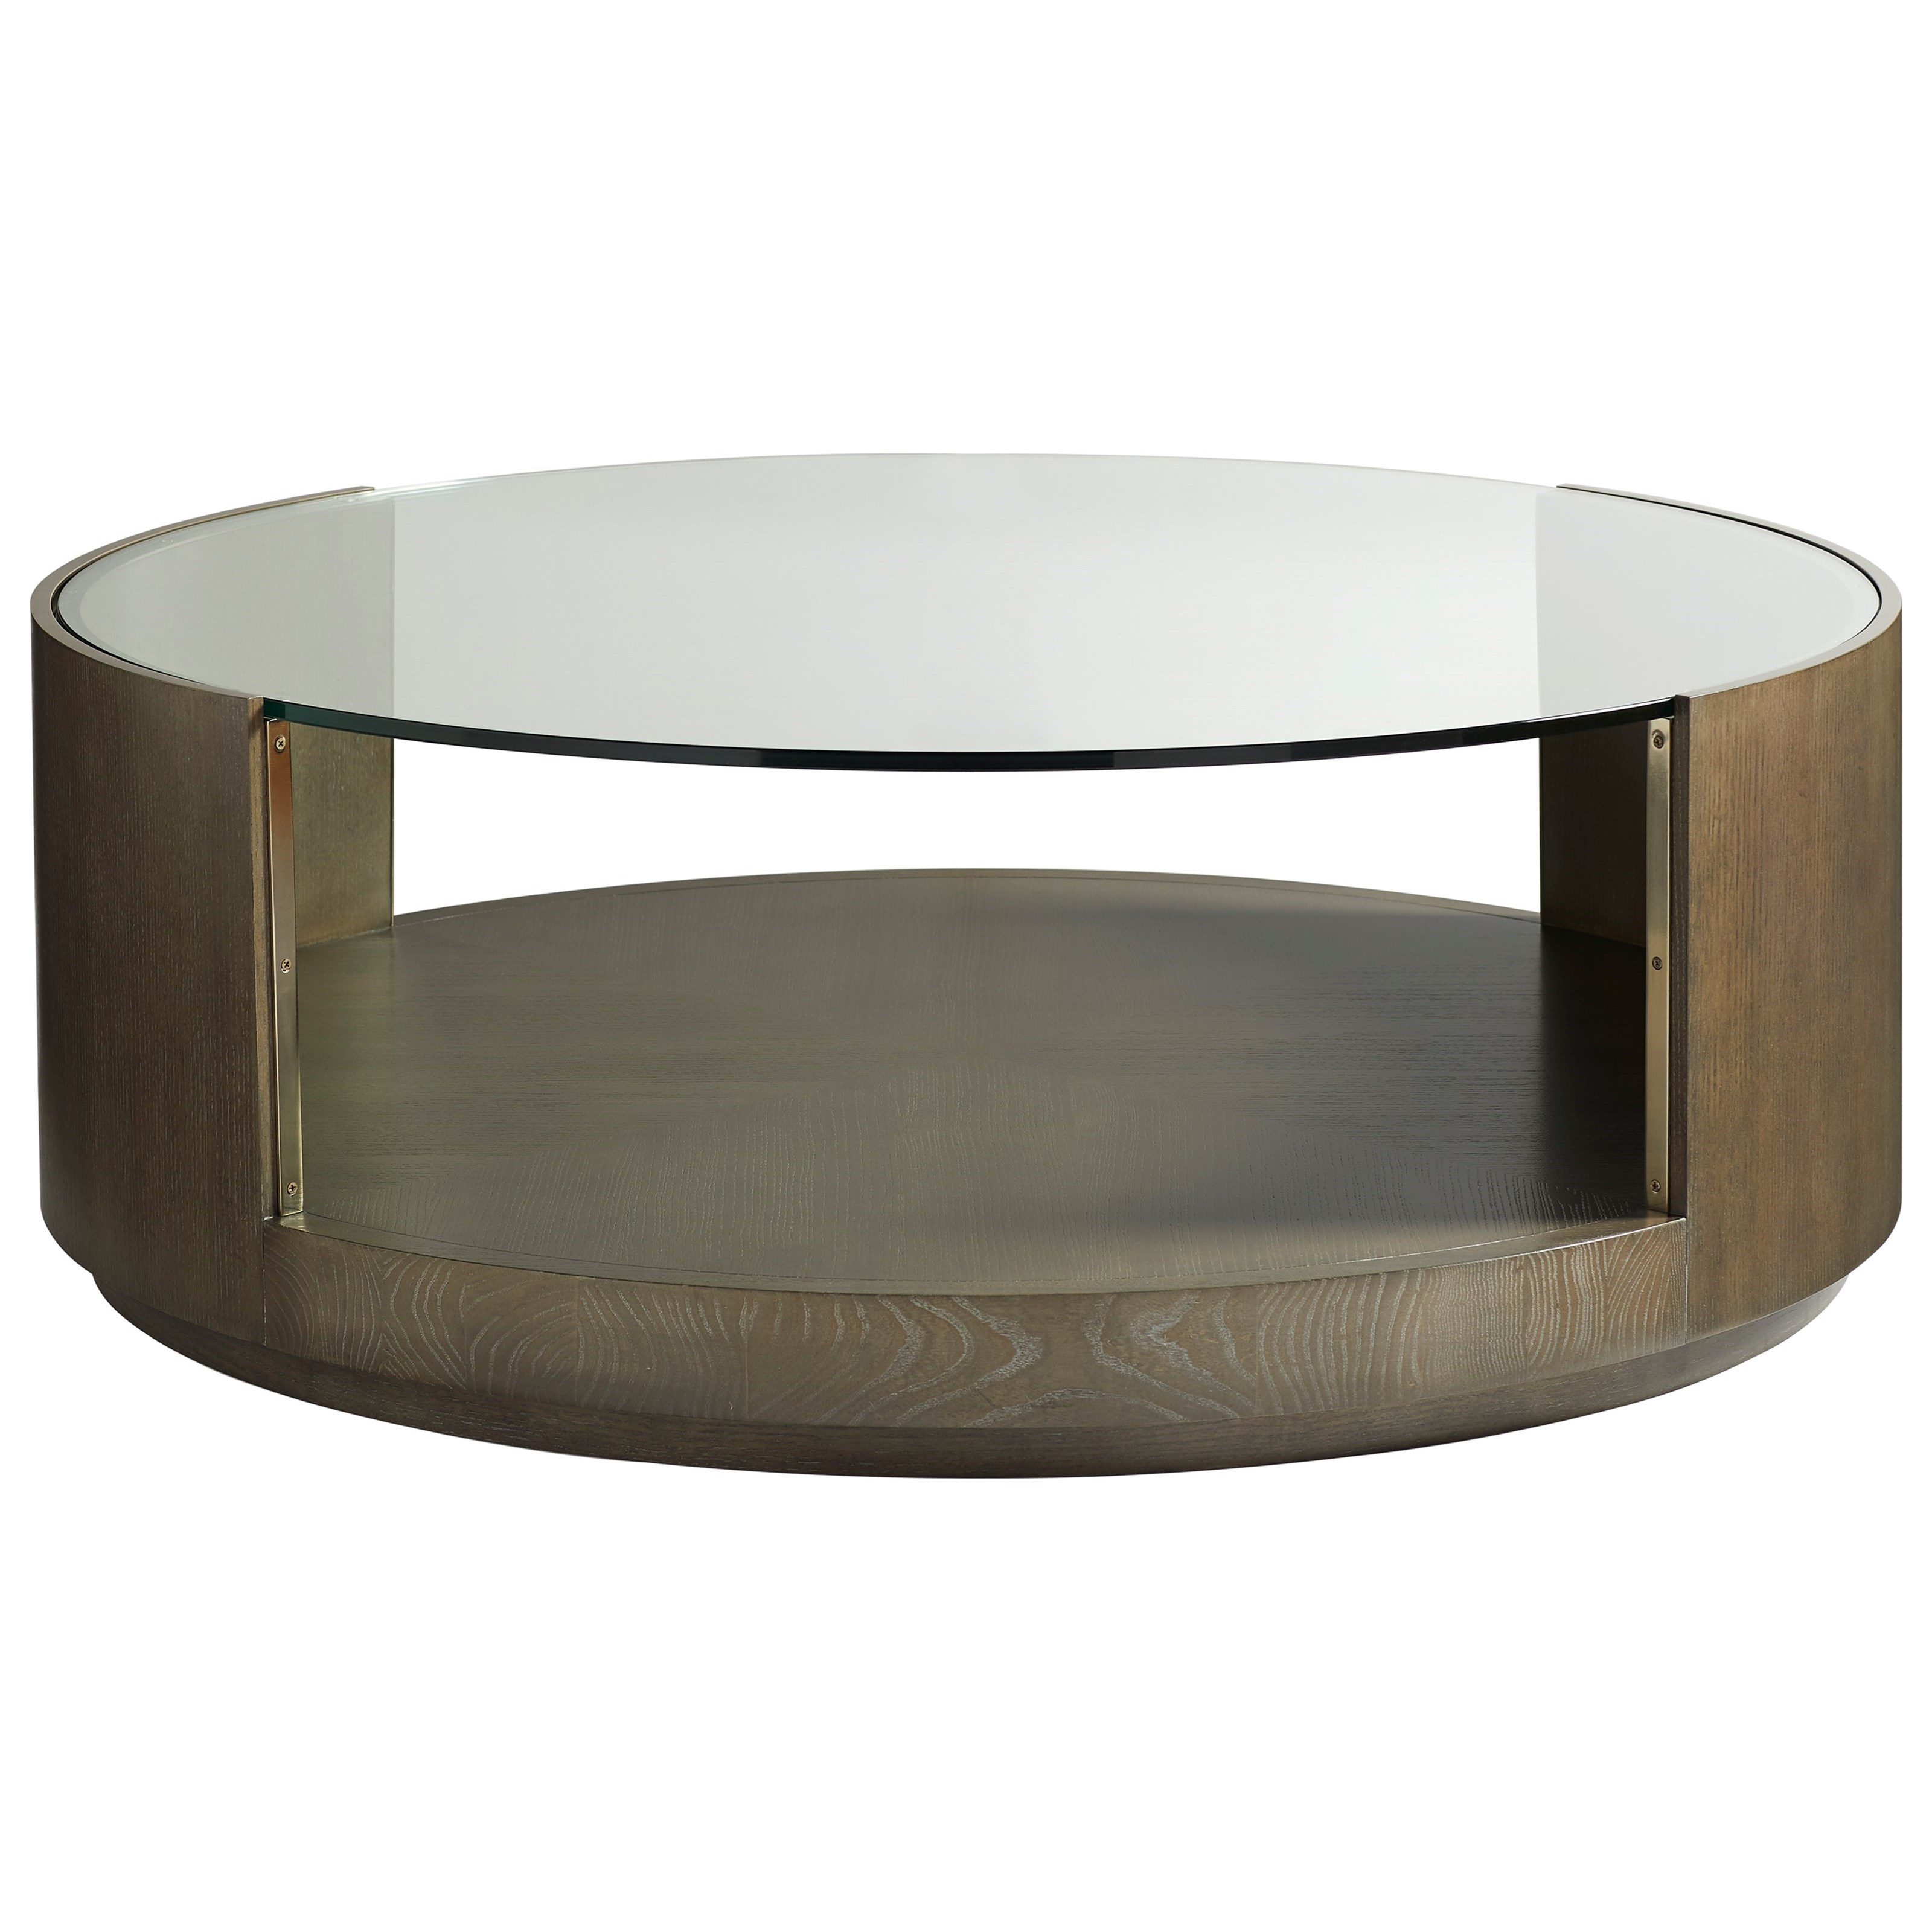 Axis Round Cocktail Table by Vanguard Furniture at Baer's Furniture